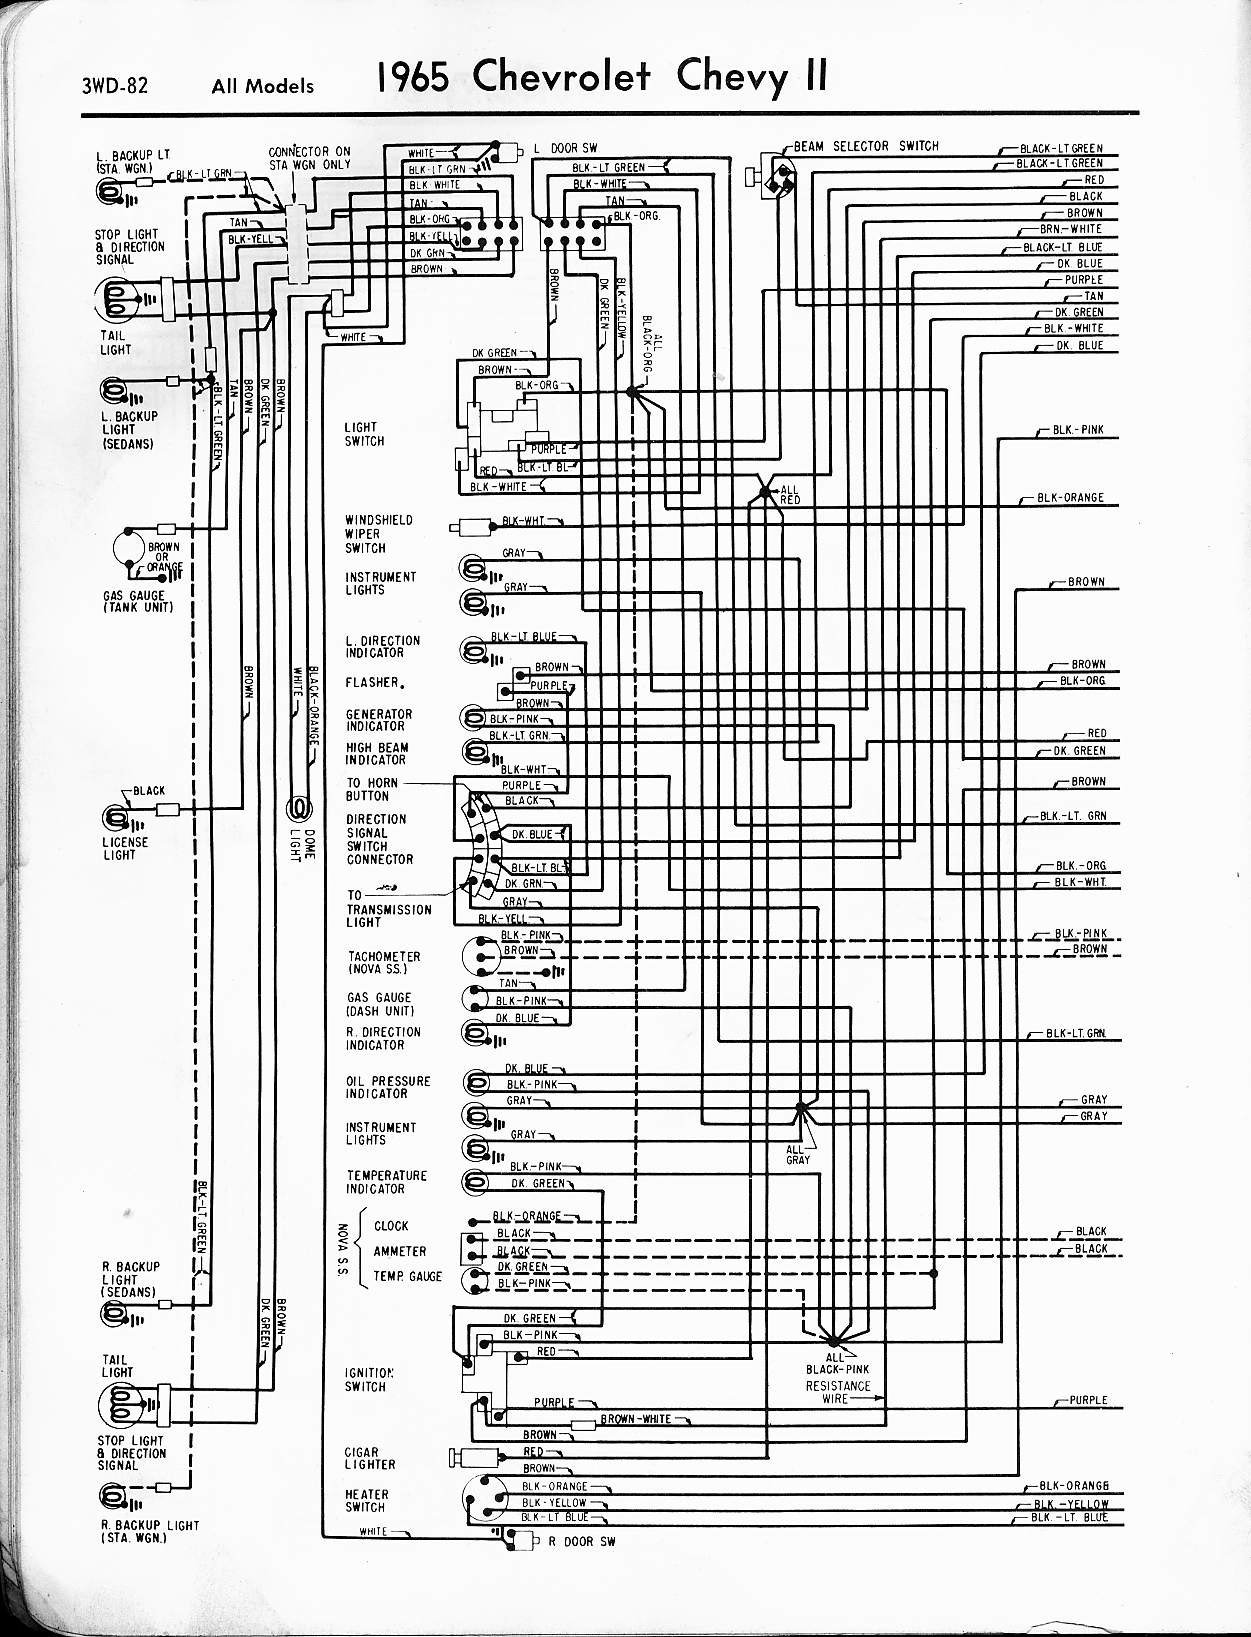 MWireChev65_3WD 082 chevy wiring diagrams chevy radio wiring \u2022 wiring diagrams j 65 chevy truck wiring diagram at alyssarenee.co